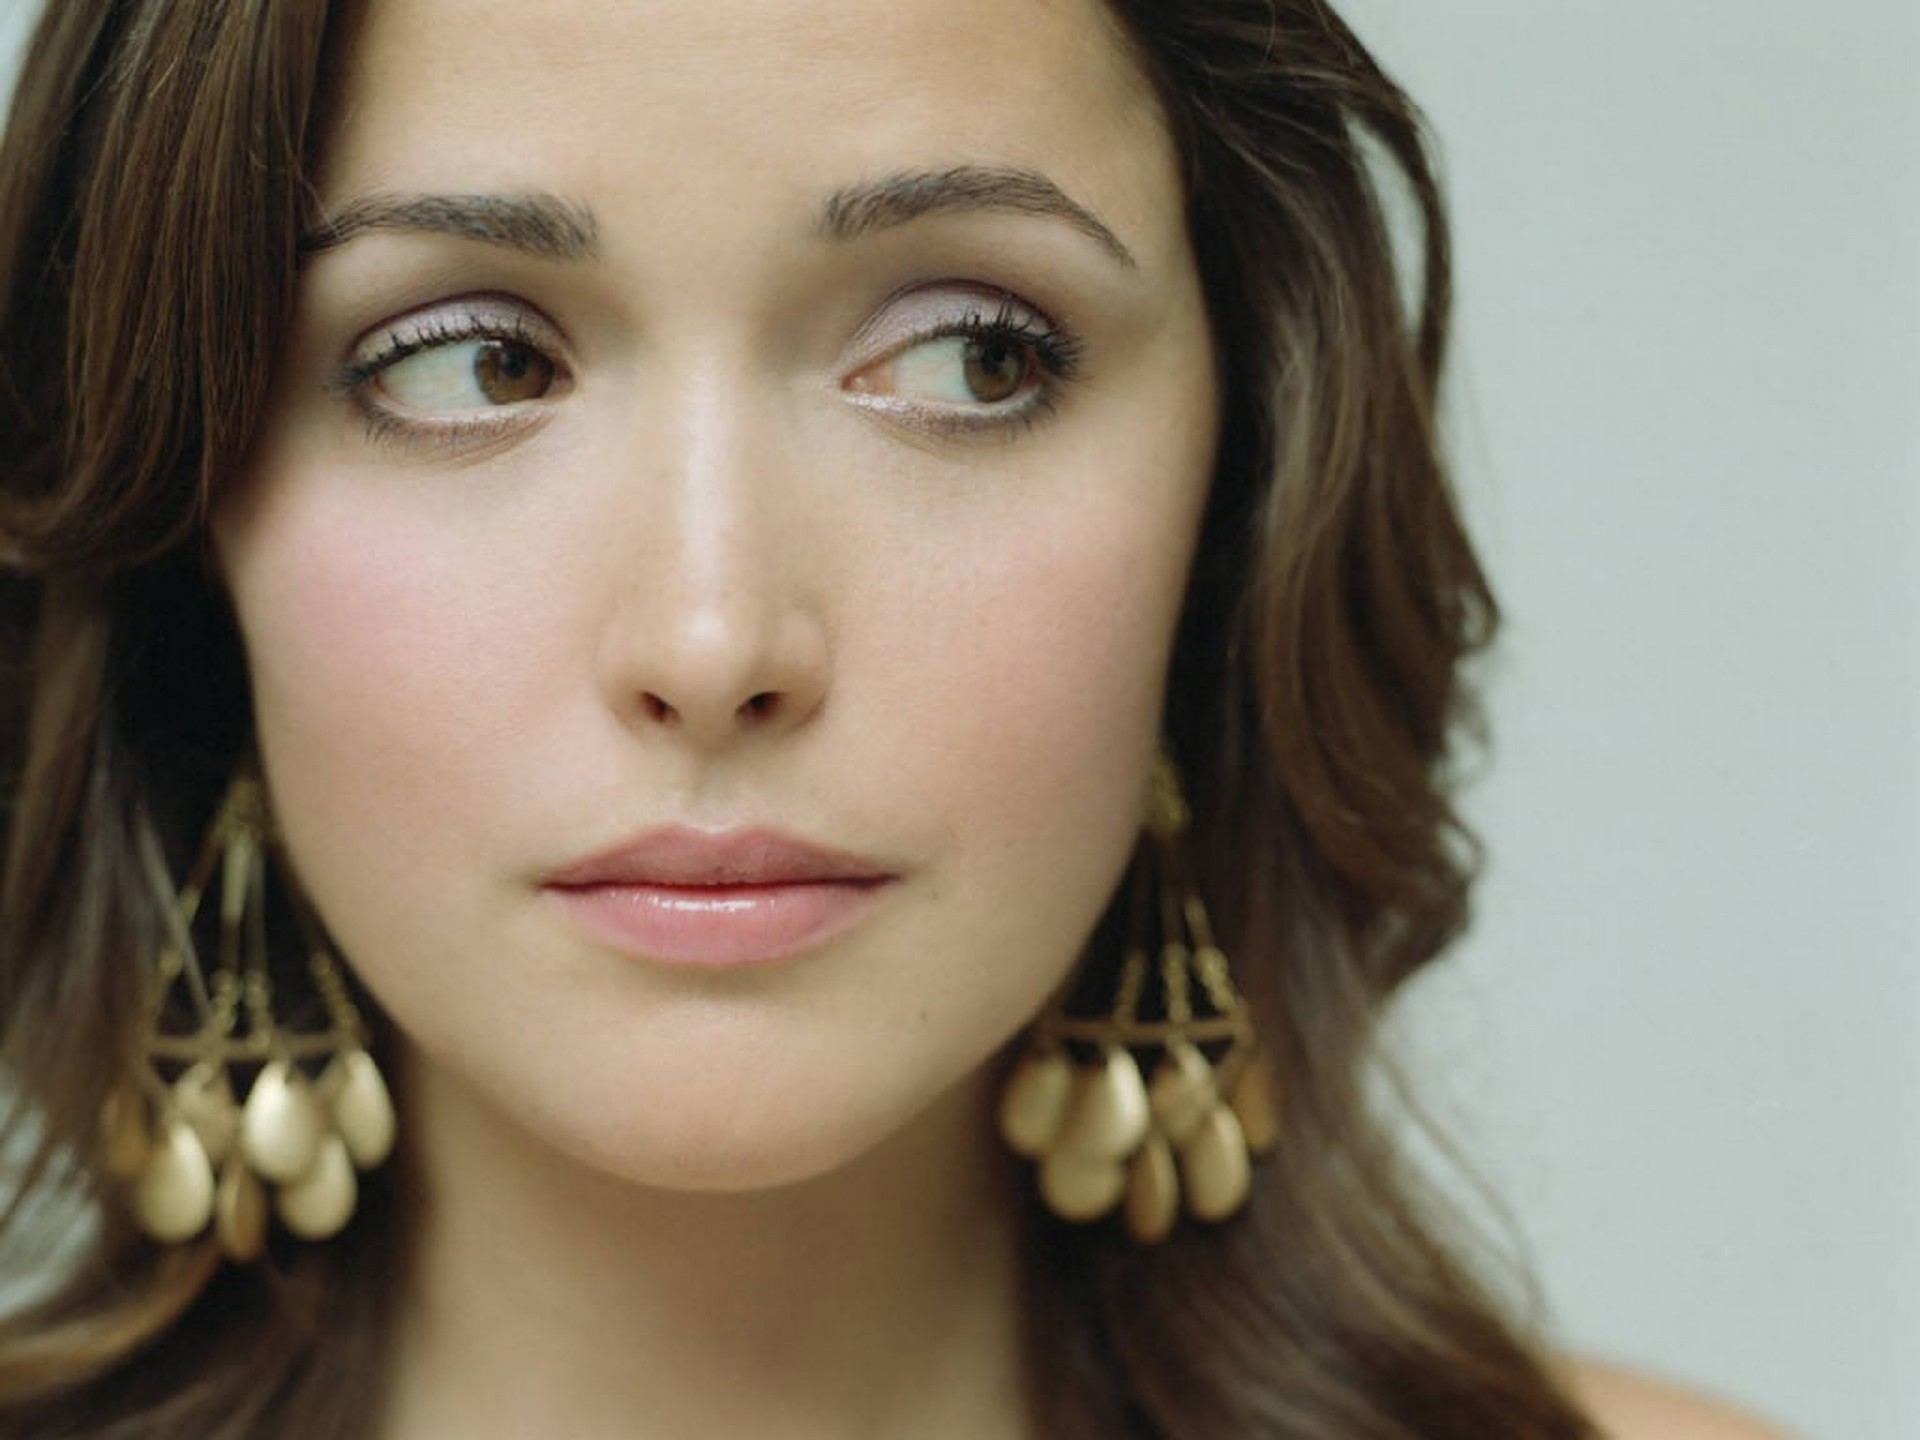 1920x1440 - Rose Byrne Wallpapers 16